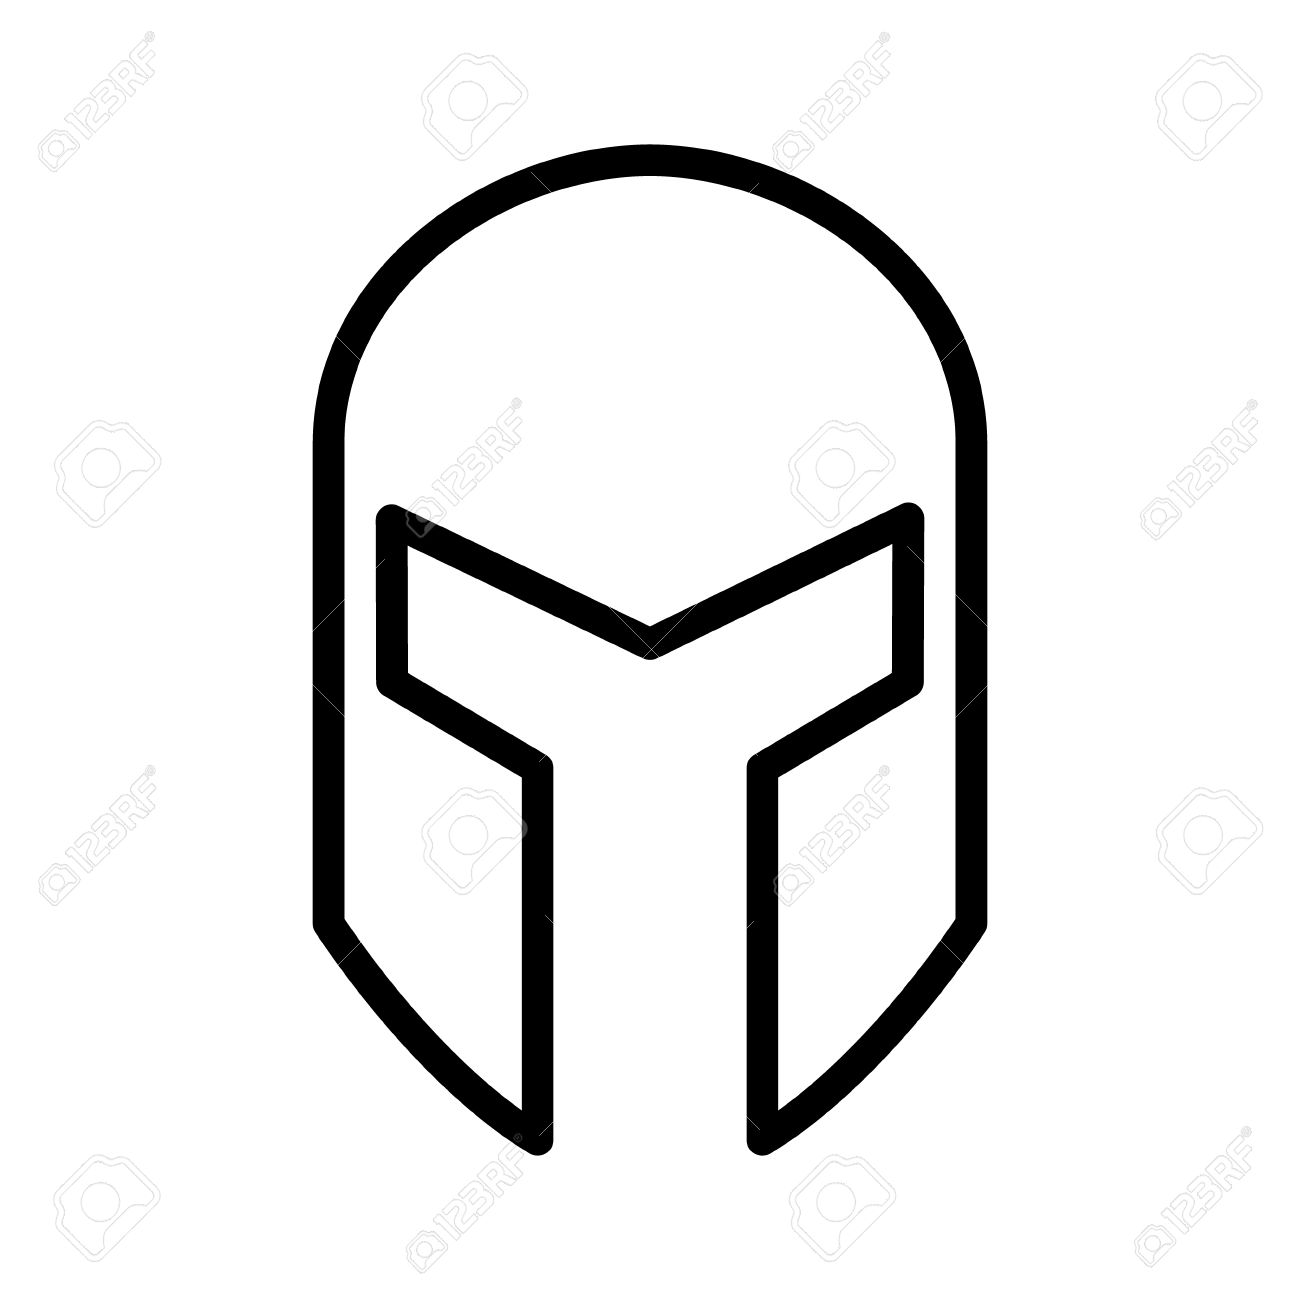 Medieval Gladiatorial Helmet Headgear Line Art Icon For Games.